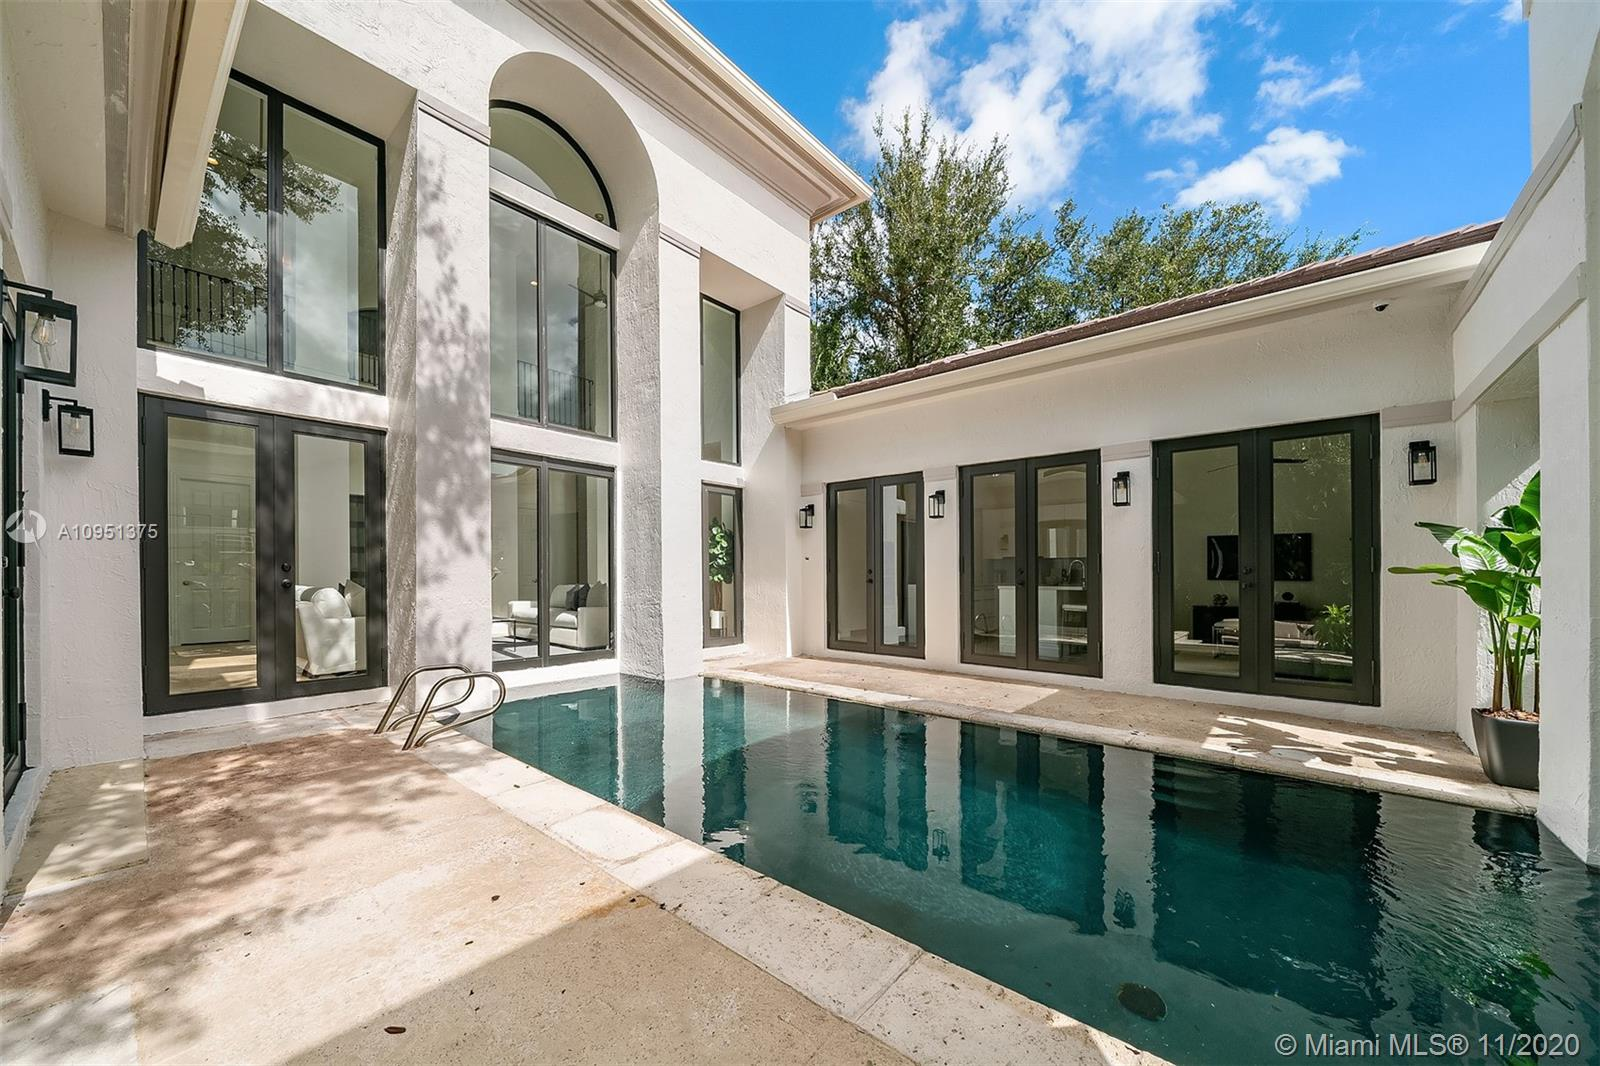 This sophisticated and elegant retreat with 4,319 Sq.Ft. was designed to offer comfort and absolute tranquility. The soaring front entry leads to an open floor plan that blends indoor and outdoor living. The light-filled living room with floor-to-ceiling windows offers views of a lap pool and courtyard. Situated beside the dining room is a modern kitchen with high-end appliances, white quartz island, and a breakfast bar with seating that opens to a family room,  ideal for entertaining.  Also on the first level is the main suite, with a stunning spa-like bathroom, walk-in closet, and glass doors that open to a pool and patio area with comfortable seating. Upstairs are 2 additional bedrooms, with en-suite bathrooms. The spacious driveway and a 2-car garage complement this extraordinary home.